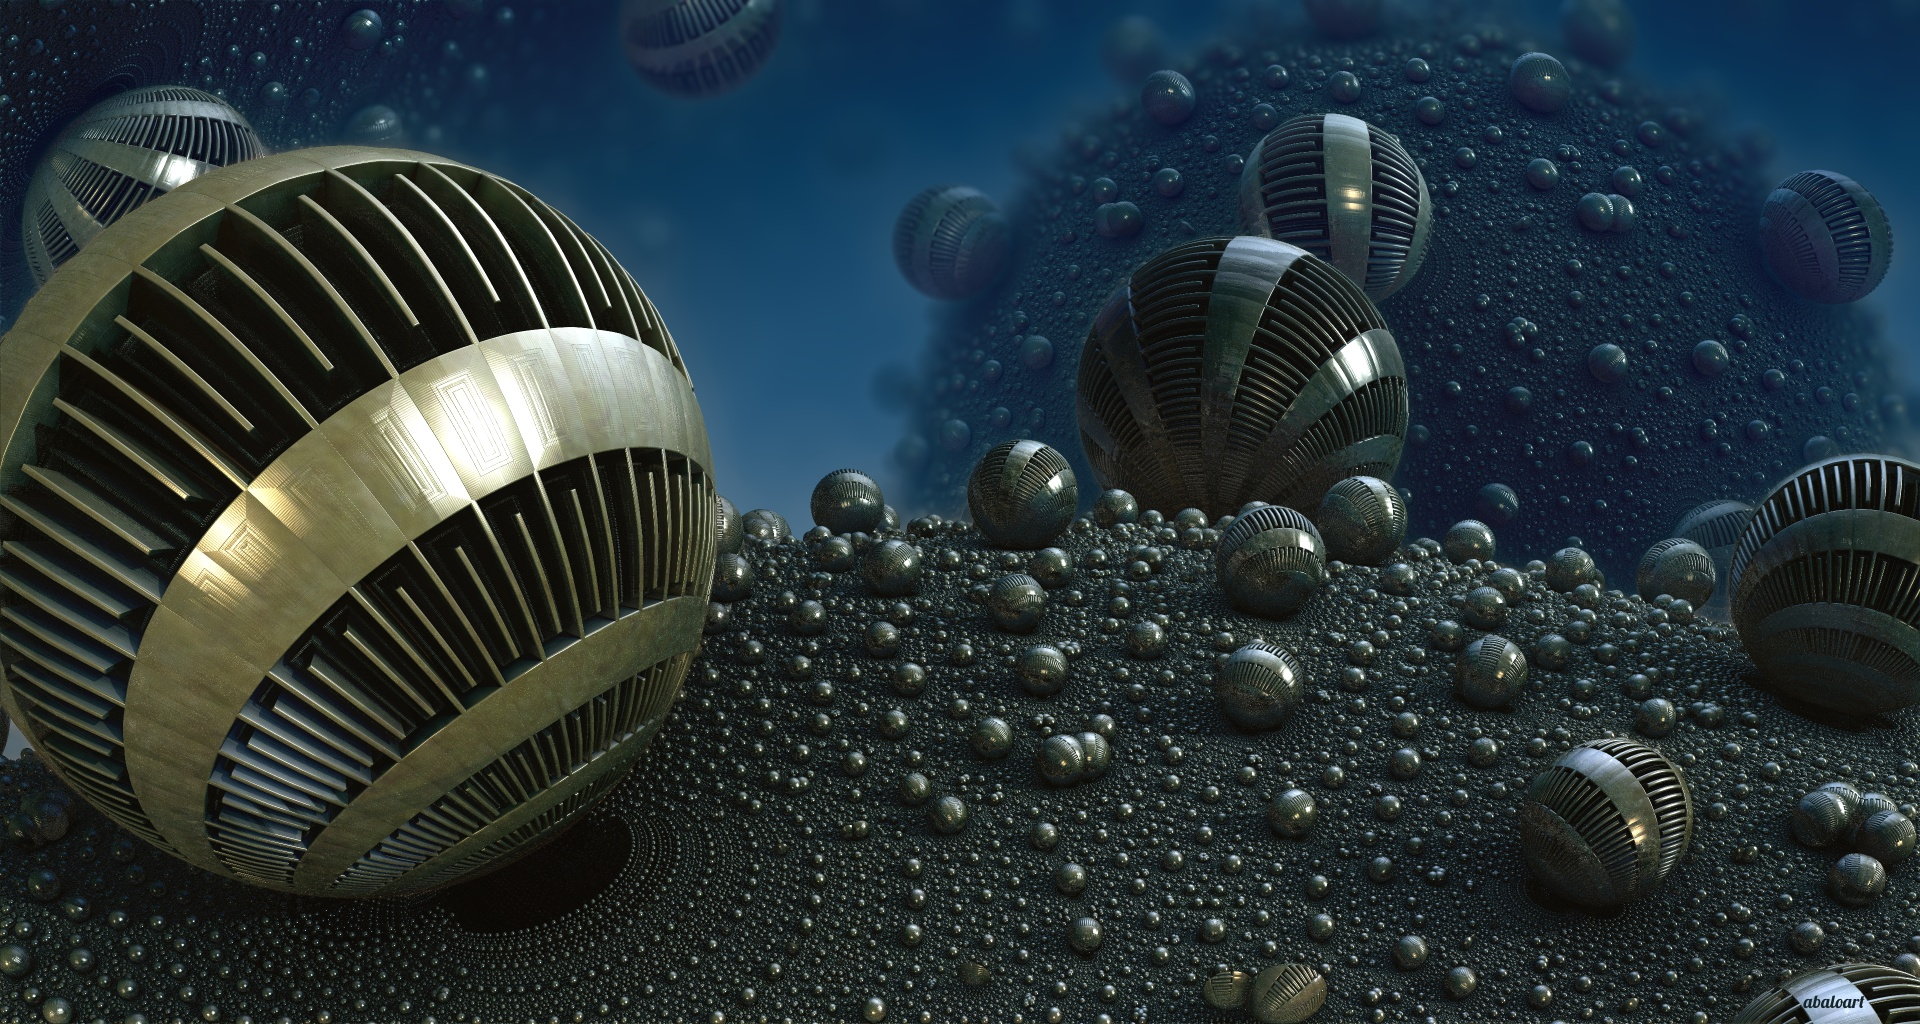 Sphere Machinery by batjorge